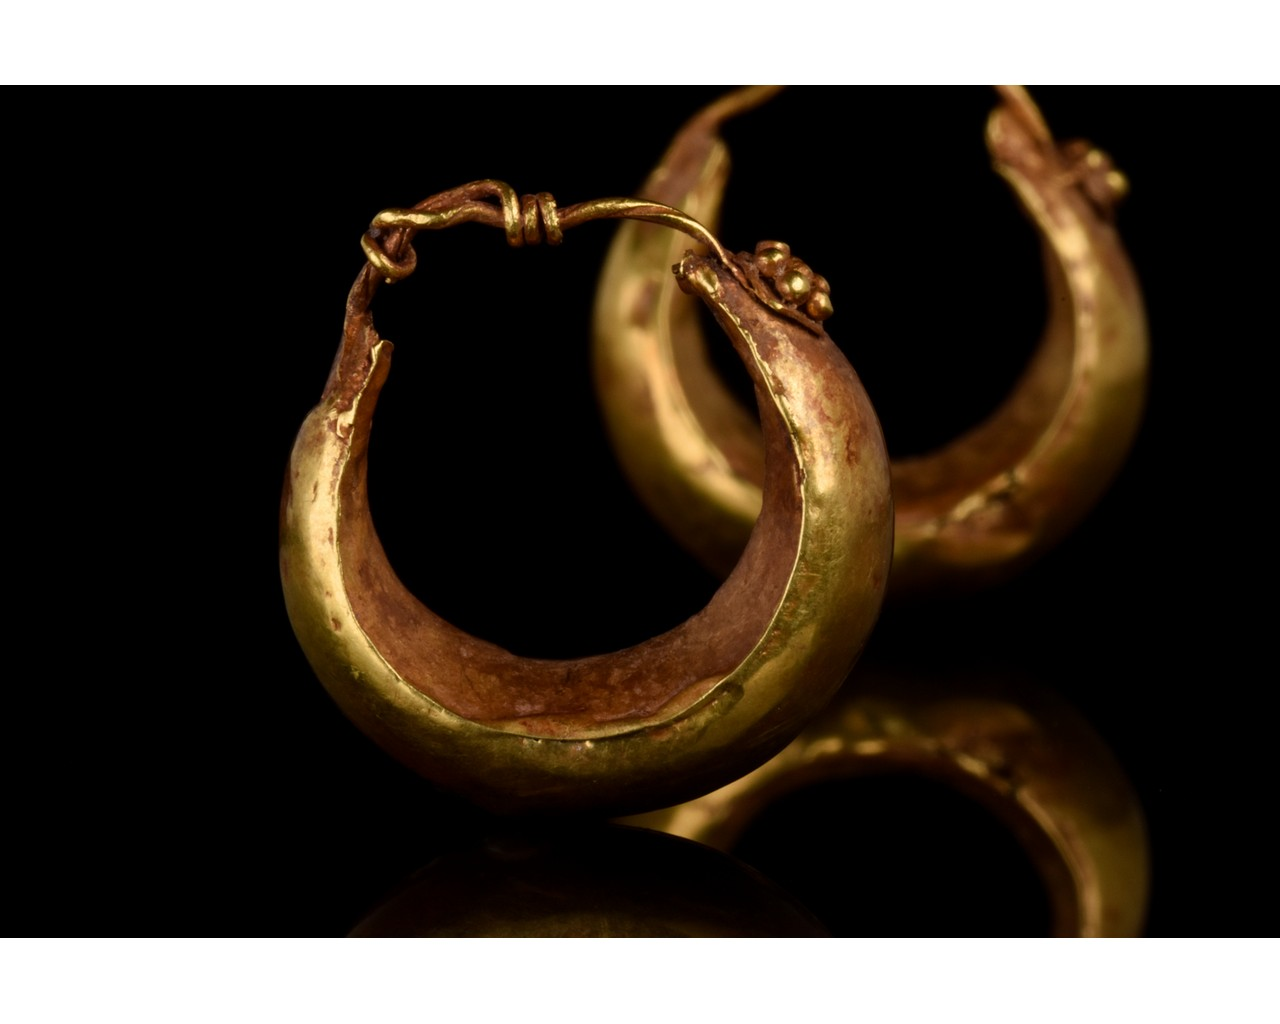 PAIR OF ROMAN GOLD BOAT SHAPED EARRINGS - FULL ANALYSIS - Image 9 of 11